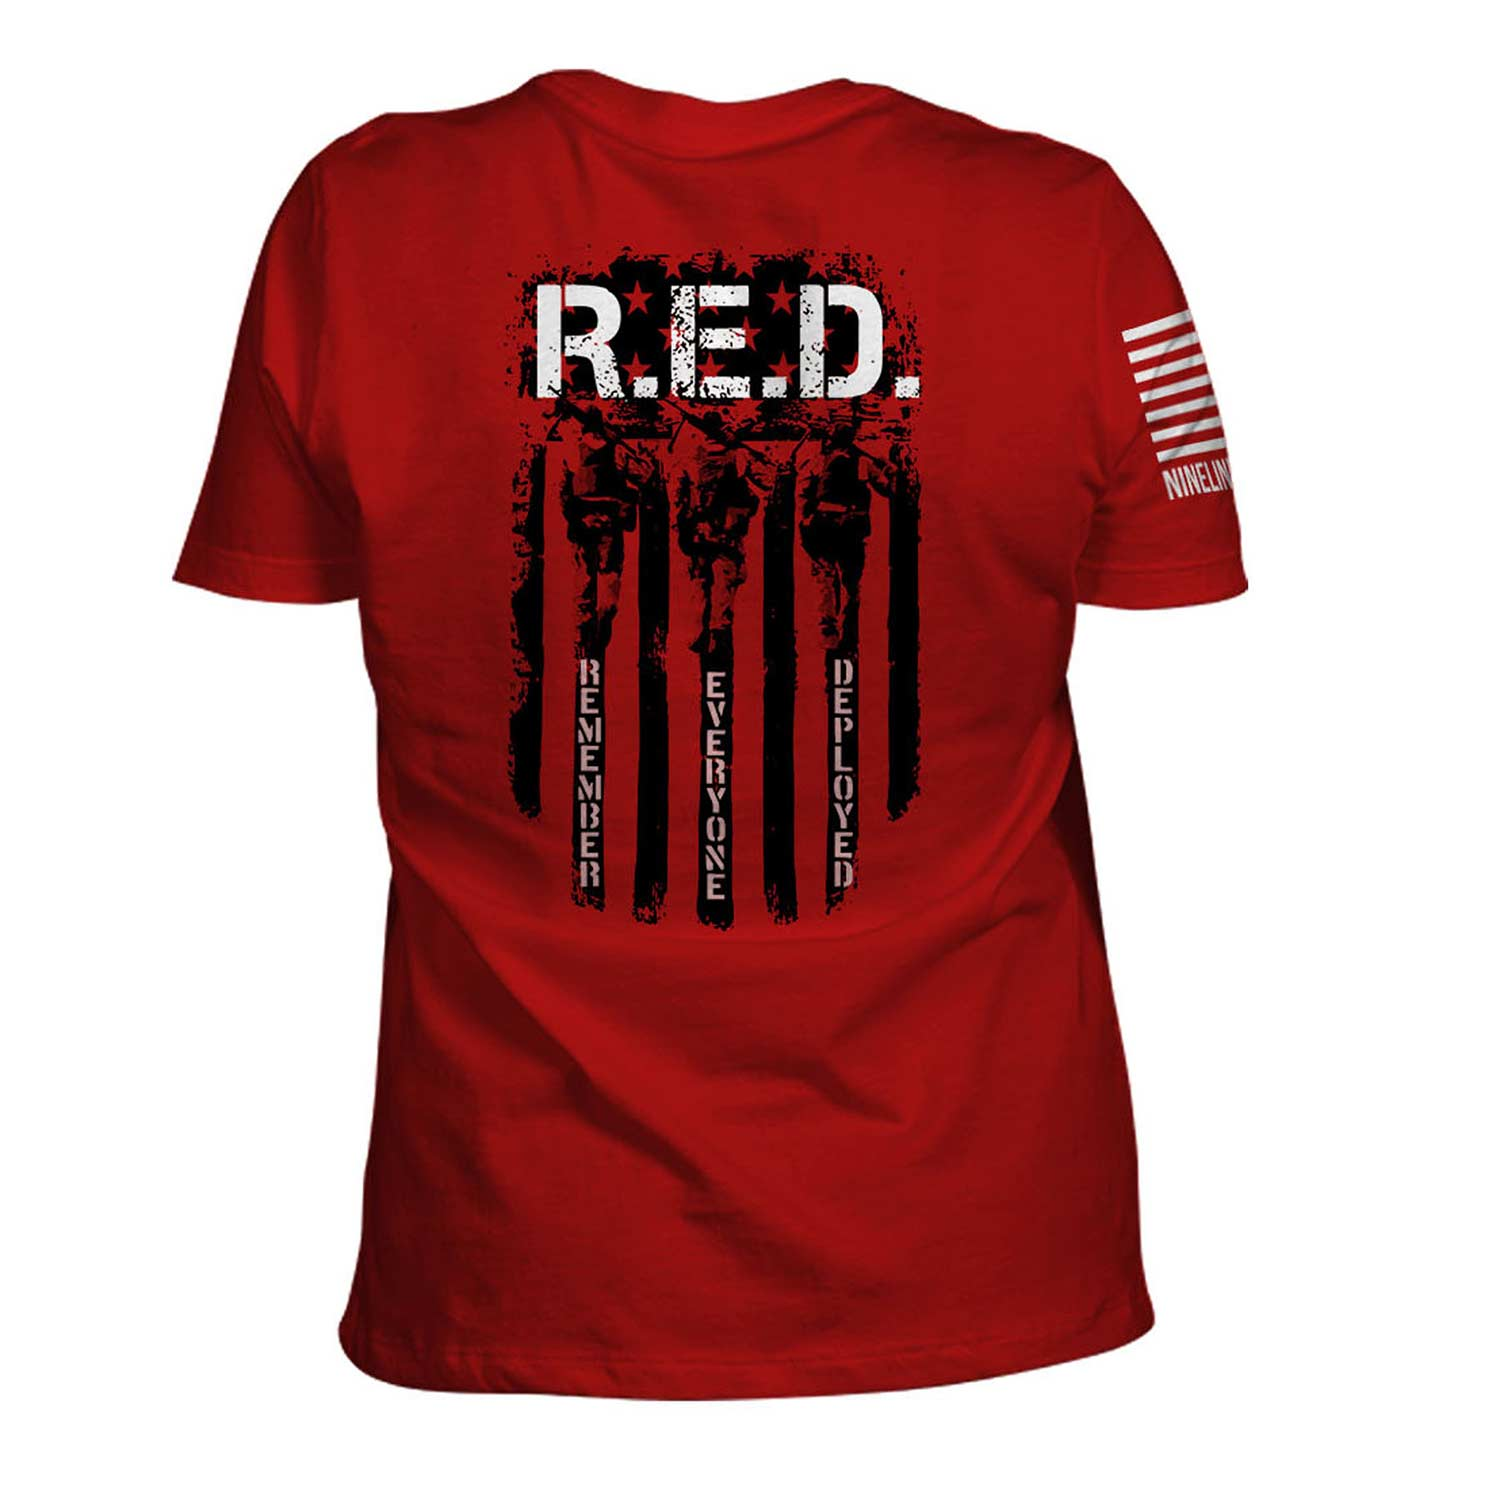 Nine Line Women's R.E.D. (Remember Everyone Deployed) T-Shir